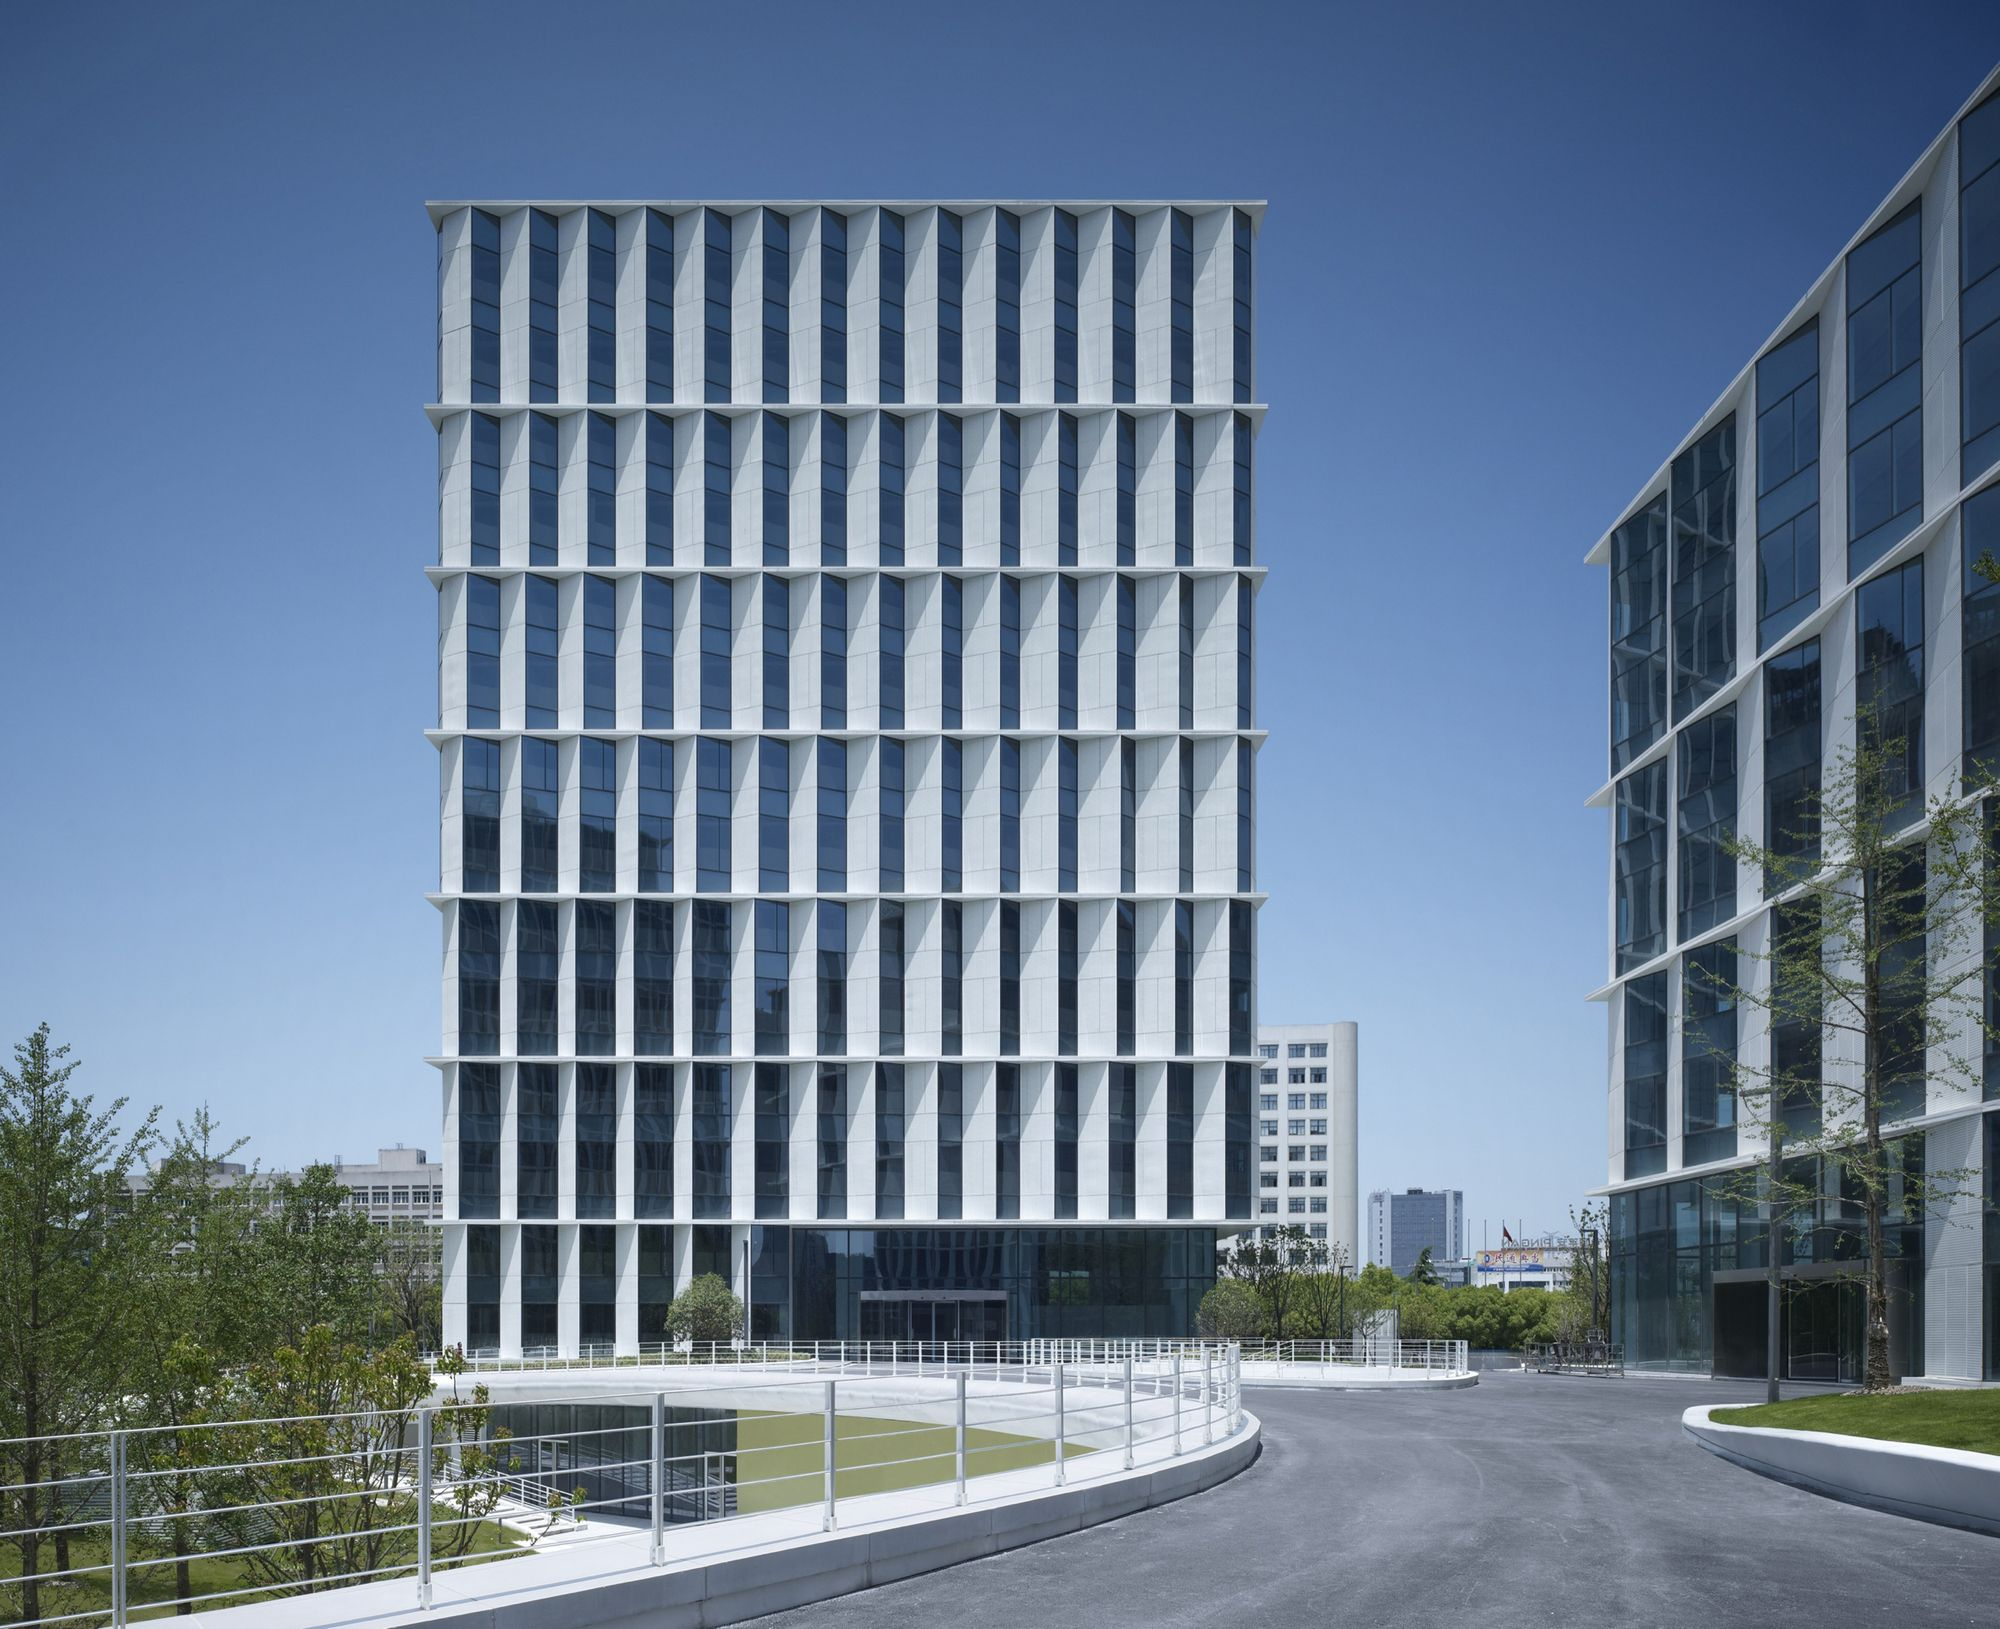 office facades. 3Cubes Office Building / Gmp Architekten Facades